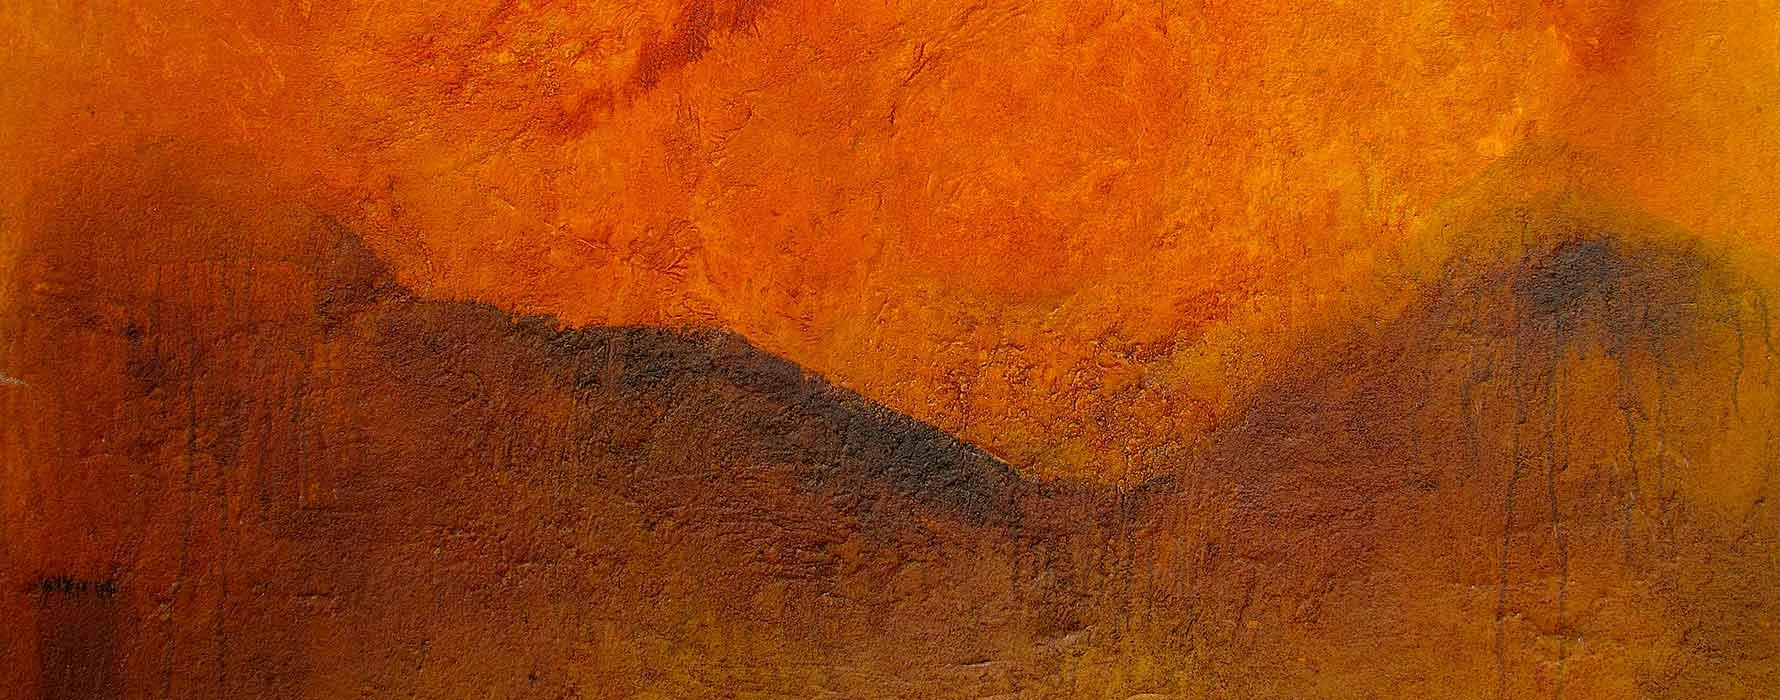 Orange and rust painting